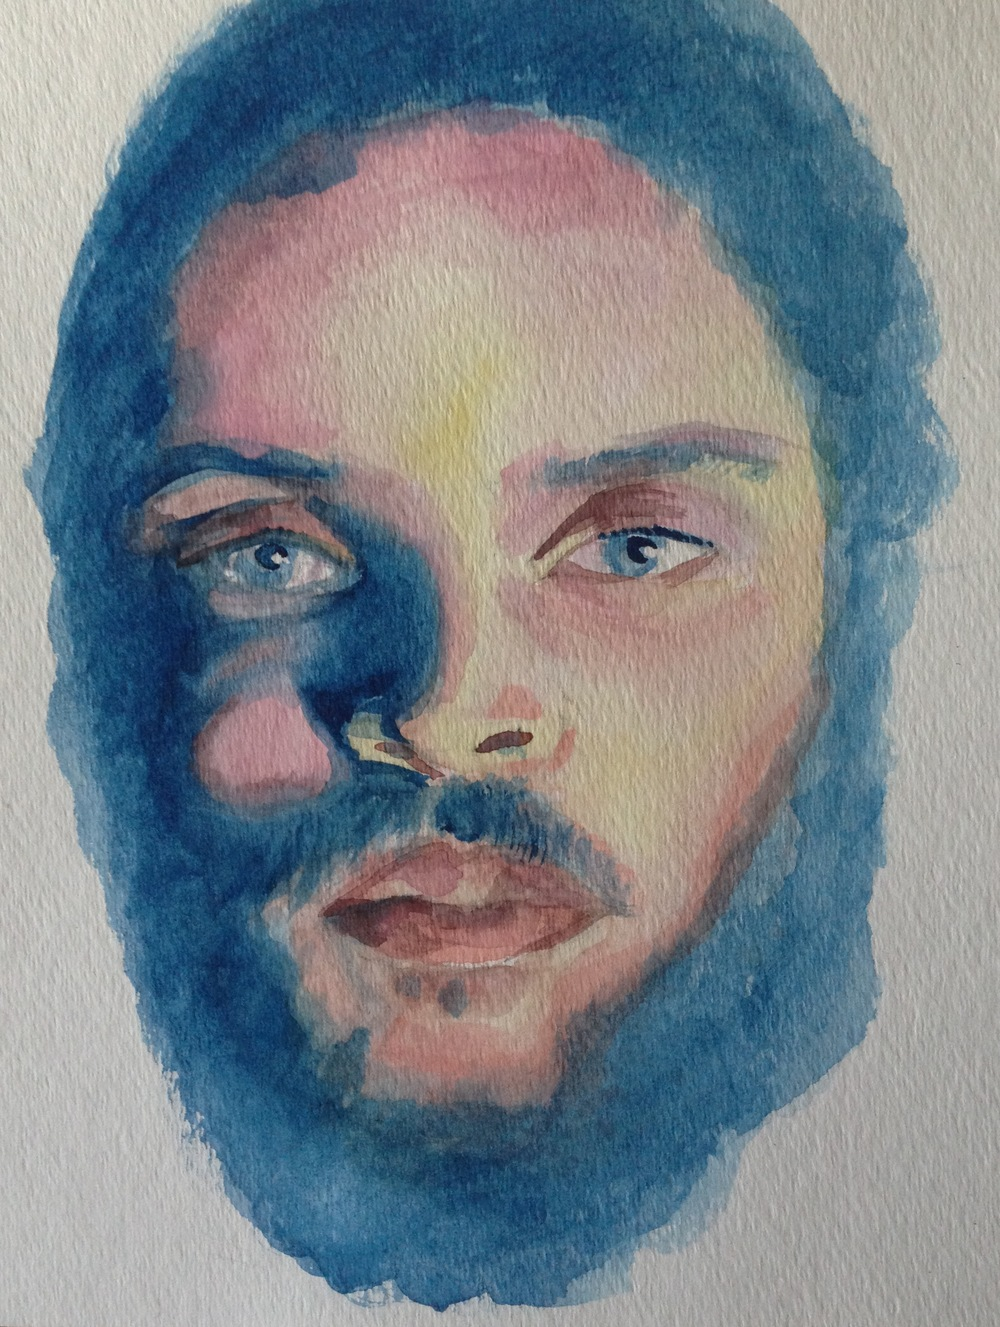 Wynwood-artist-watercolor-painting-amir-shakir